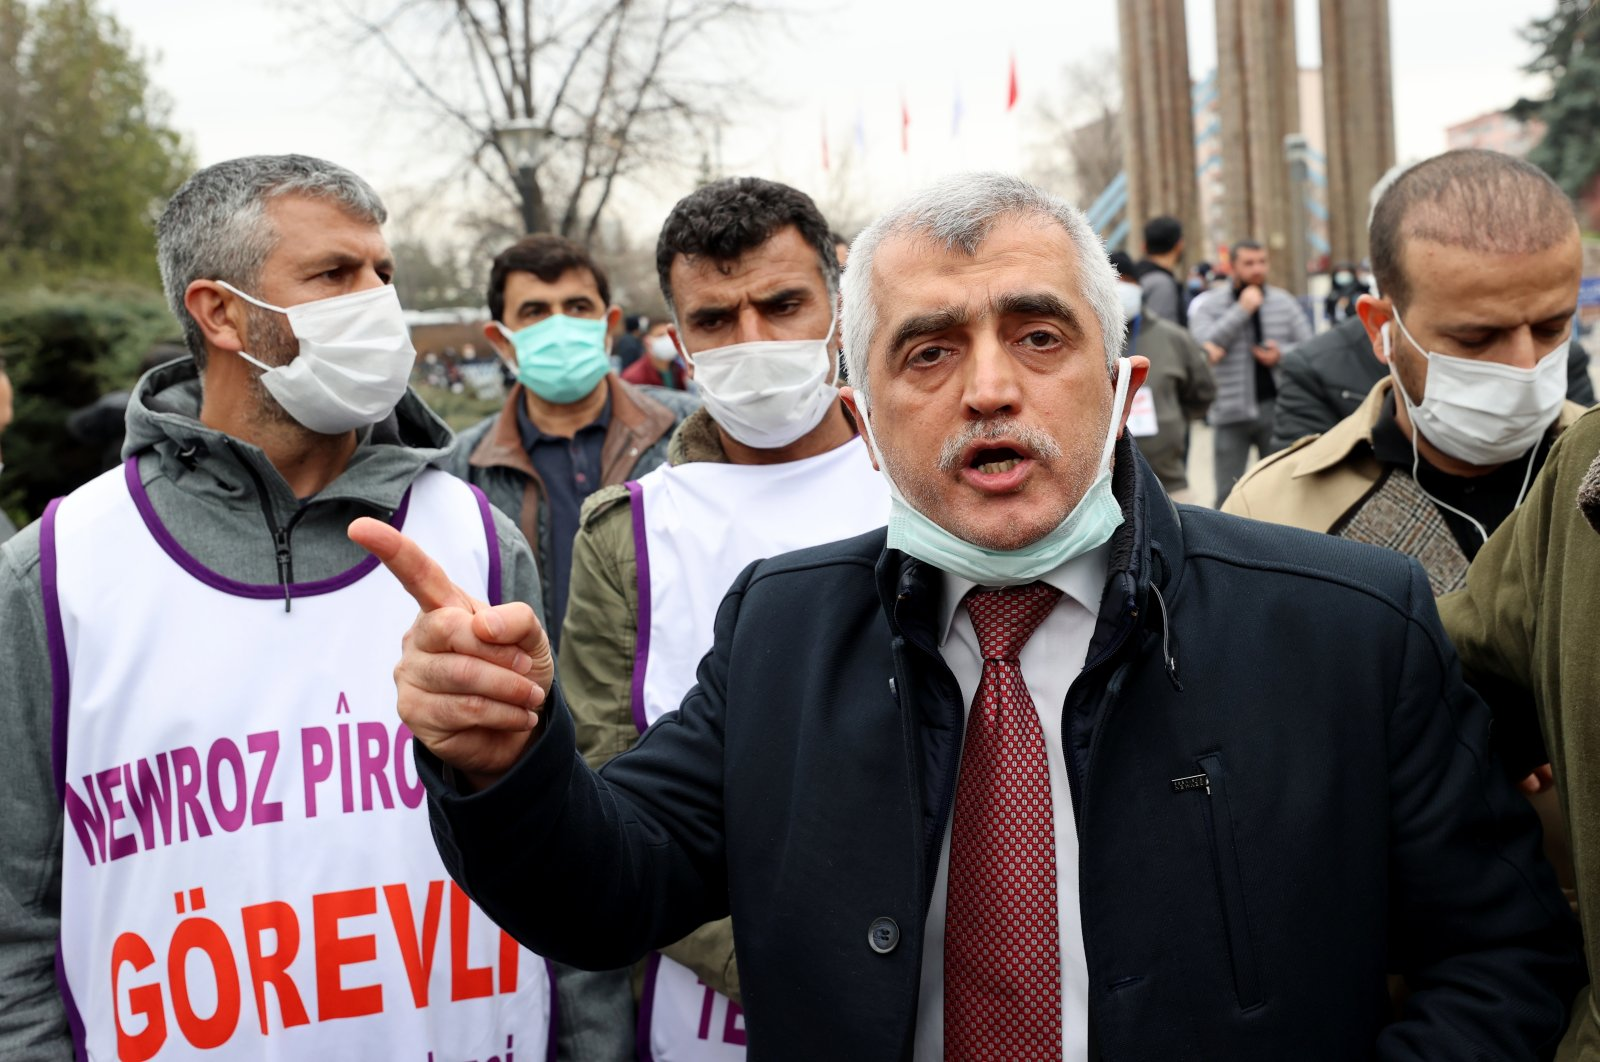 Former lawmaker Ömer Faruk Gergerlioğlu speaks after being denied entry by security forces to an event organized by HDP in Turkey's capital Ankara, Mar. 21, 2021 (AA Photo)